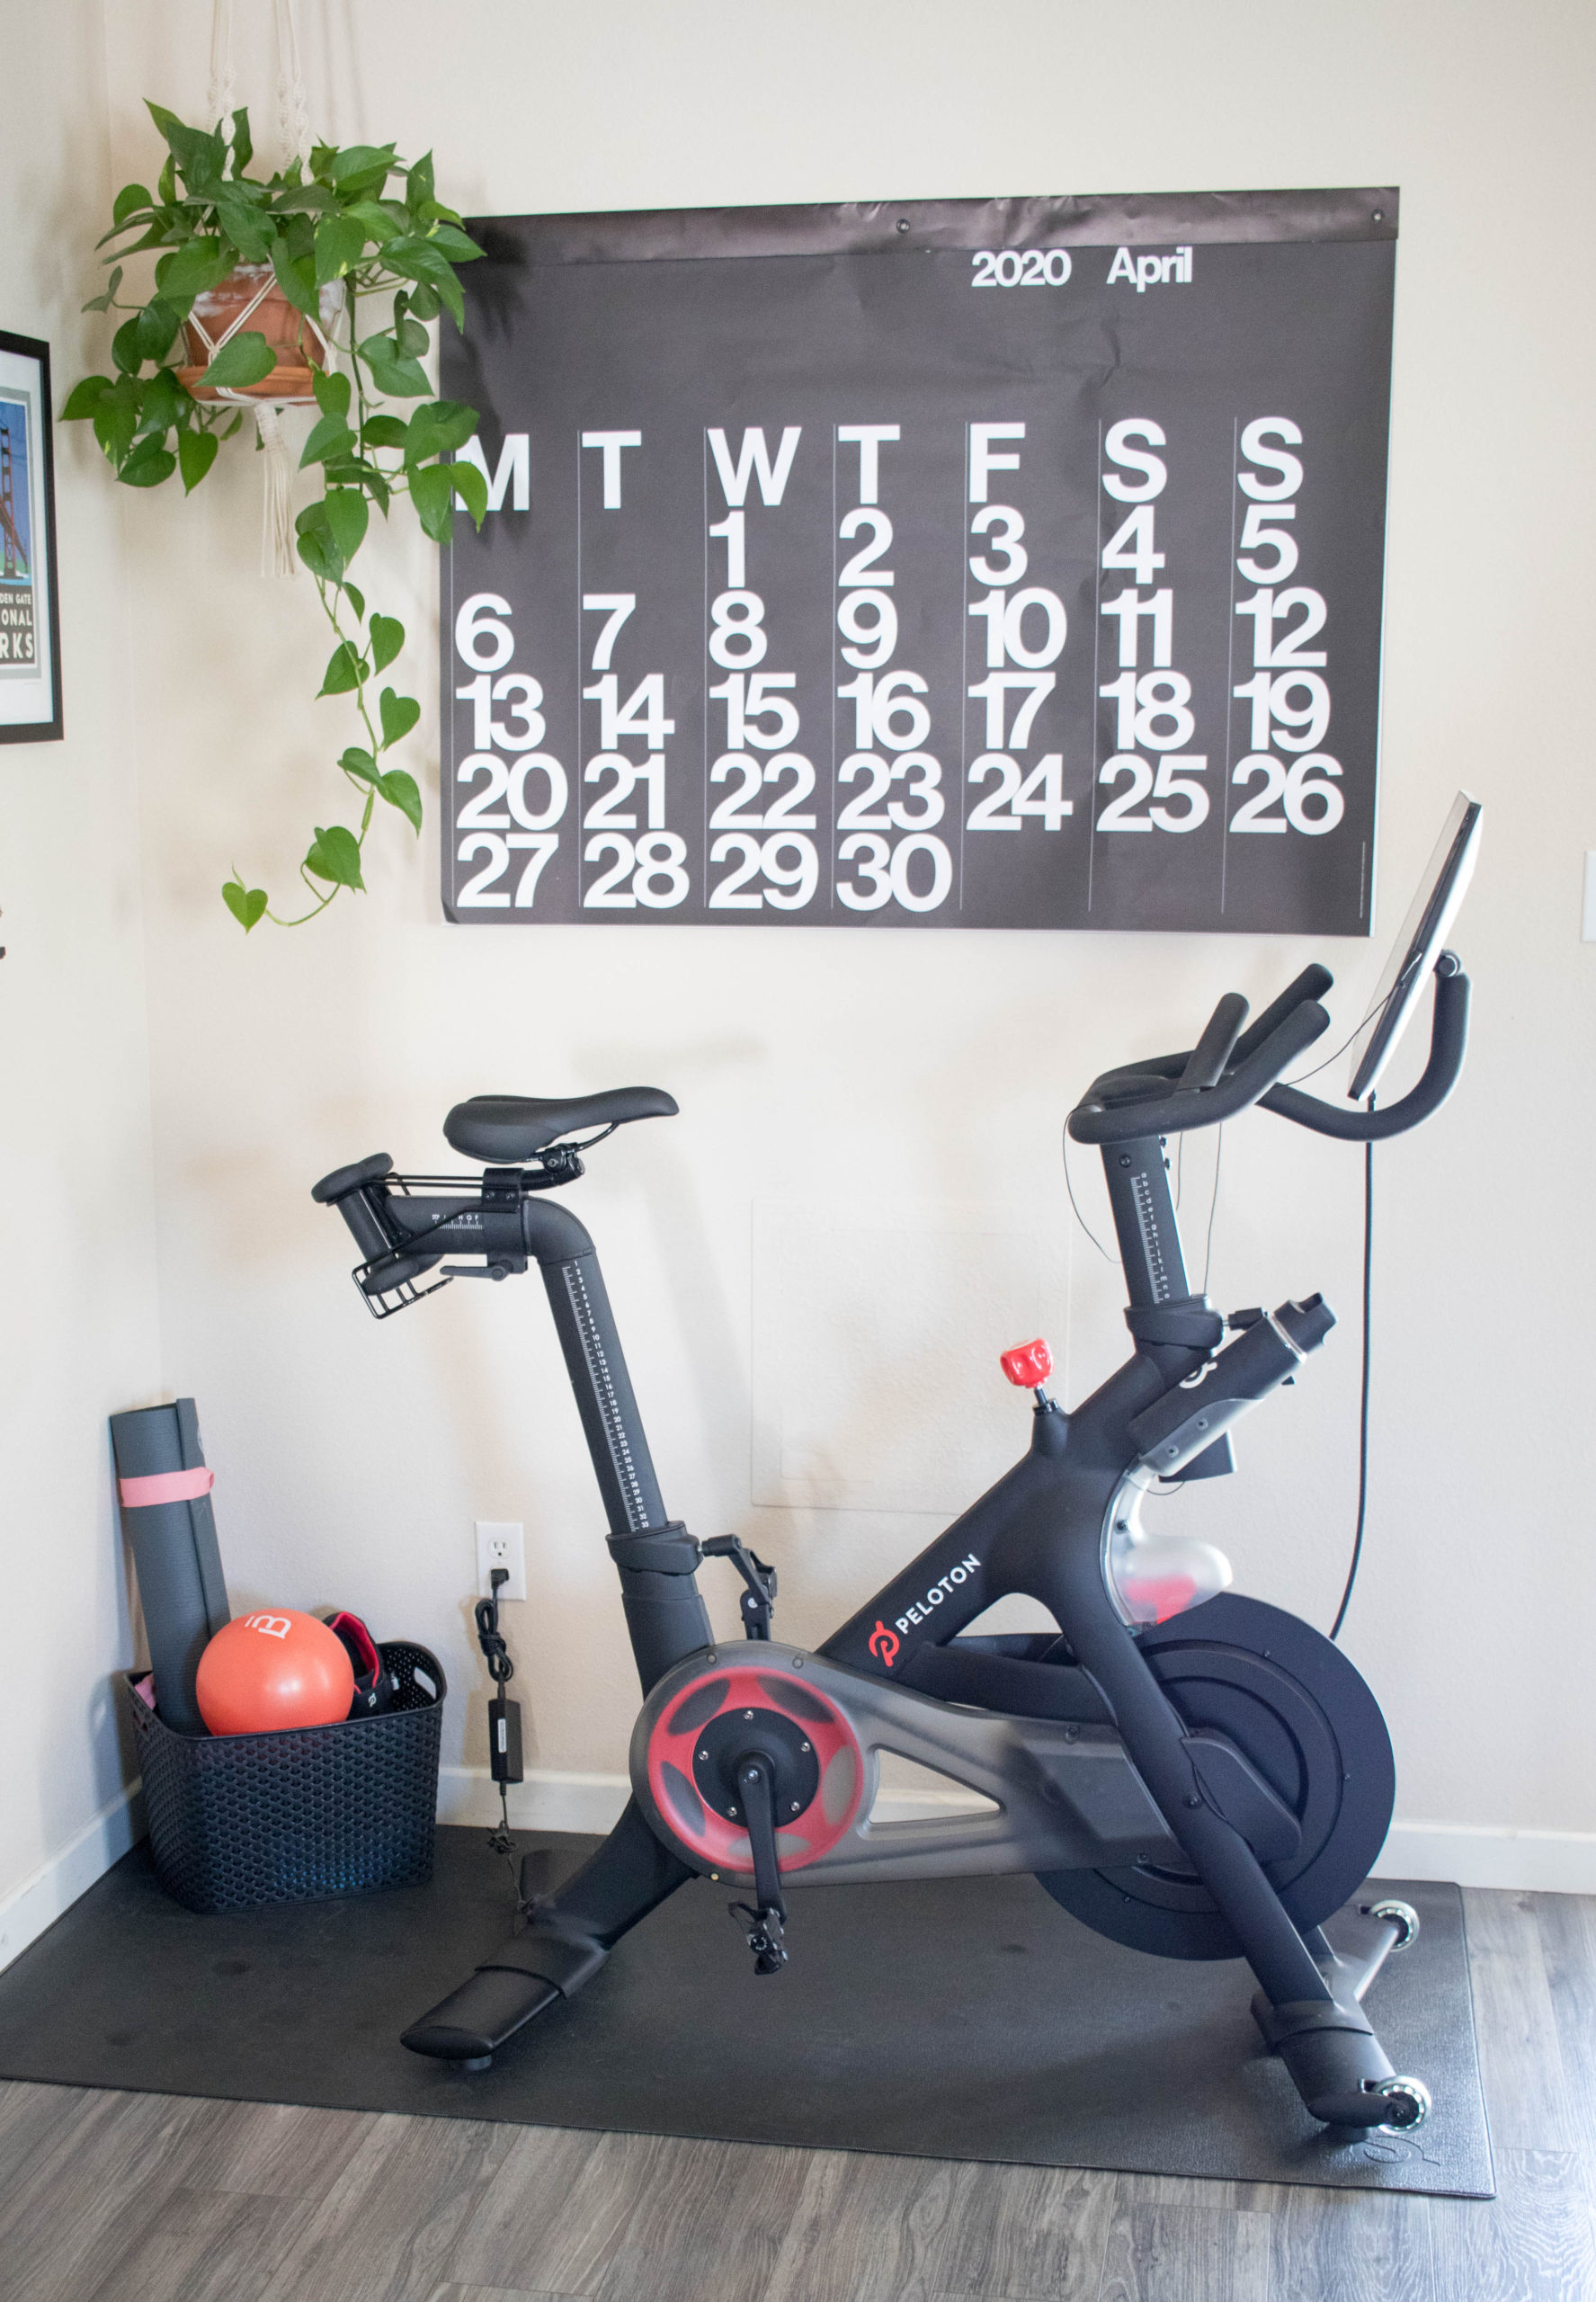 peloton bike review #peleton #workoutathome #exercise #spinning